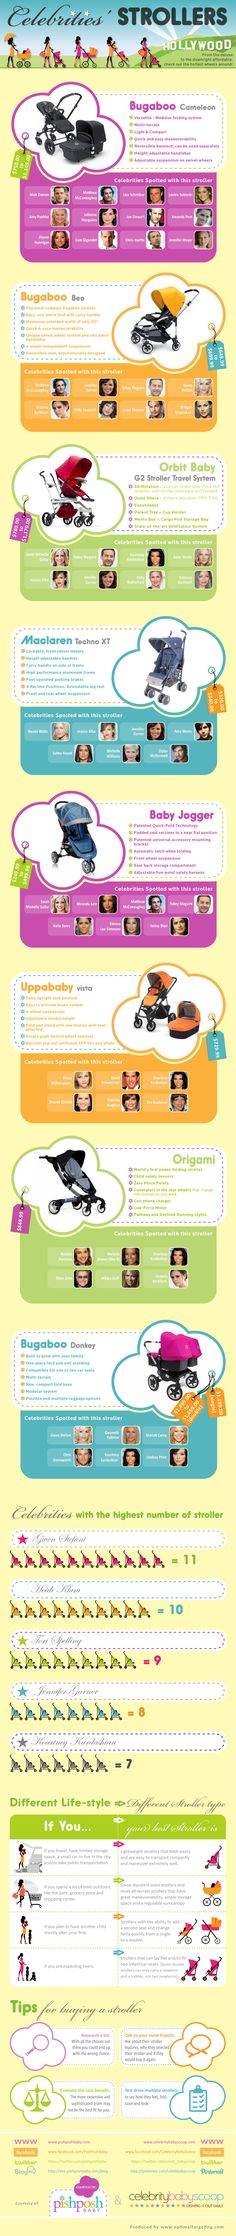 Celeb-Strollers-Infographic - View which stroller is popular for celebrities. Buy yours today at albeebaby.com